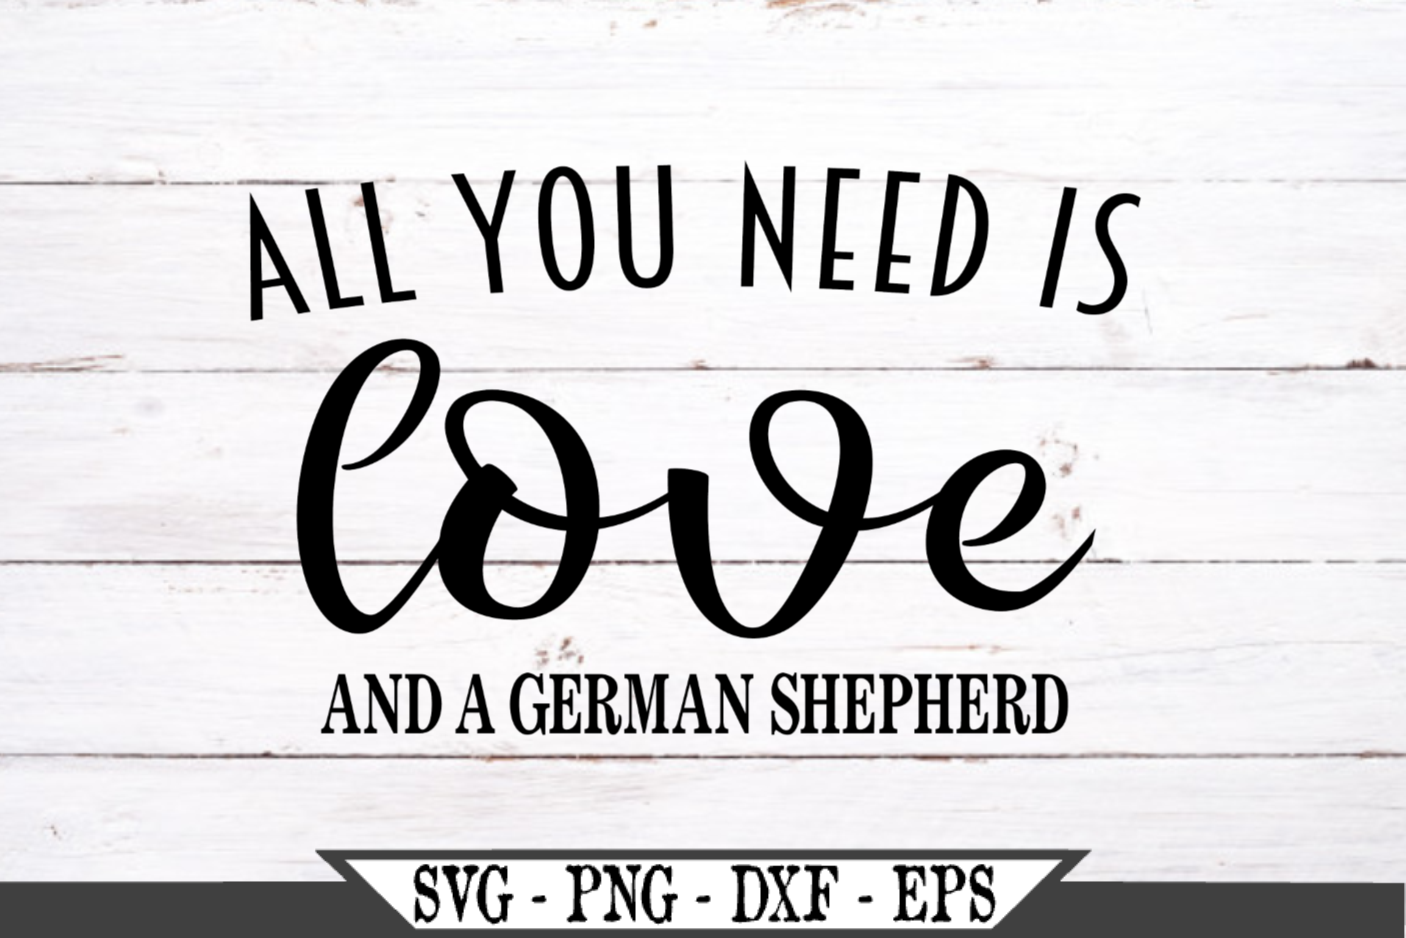 All You Need Is Love And A German Shepherd Dog SVG example image 2